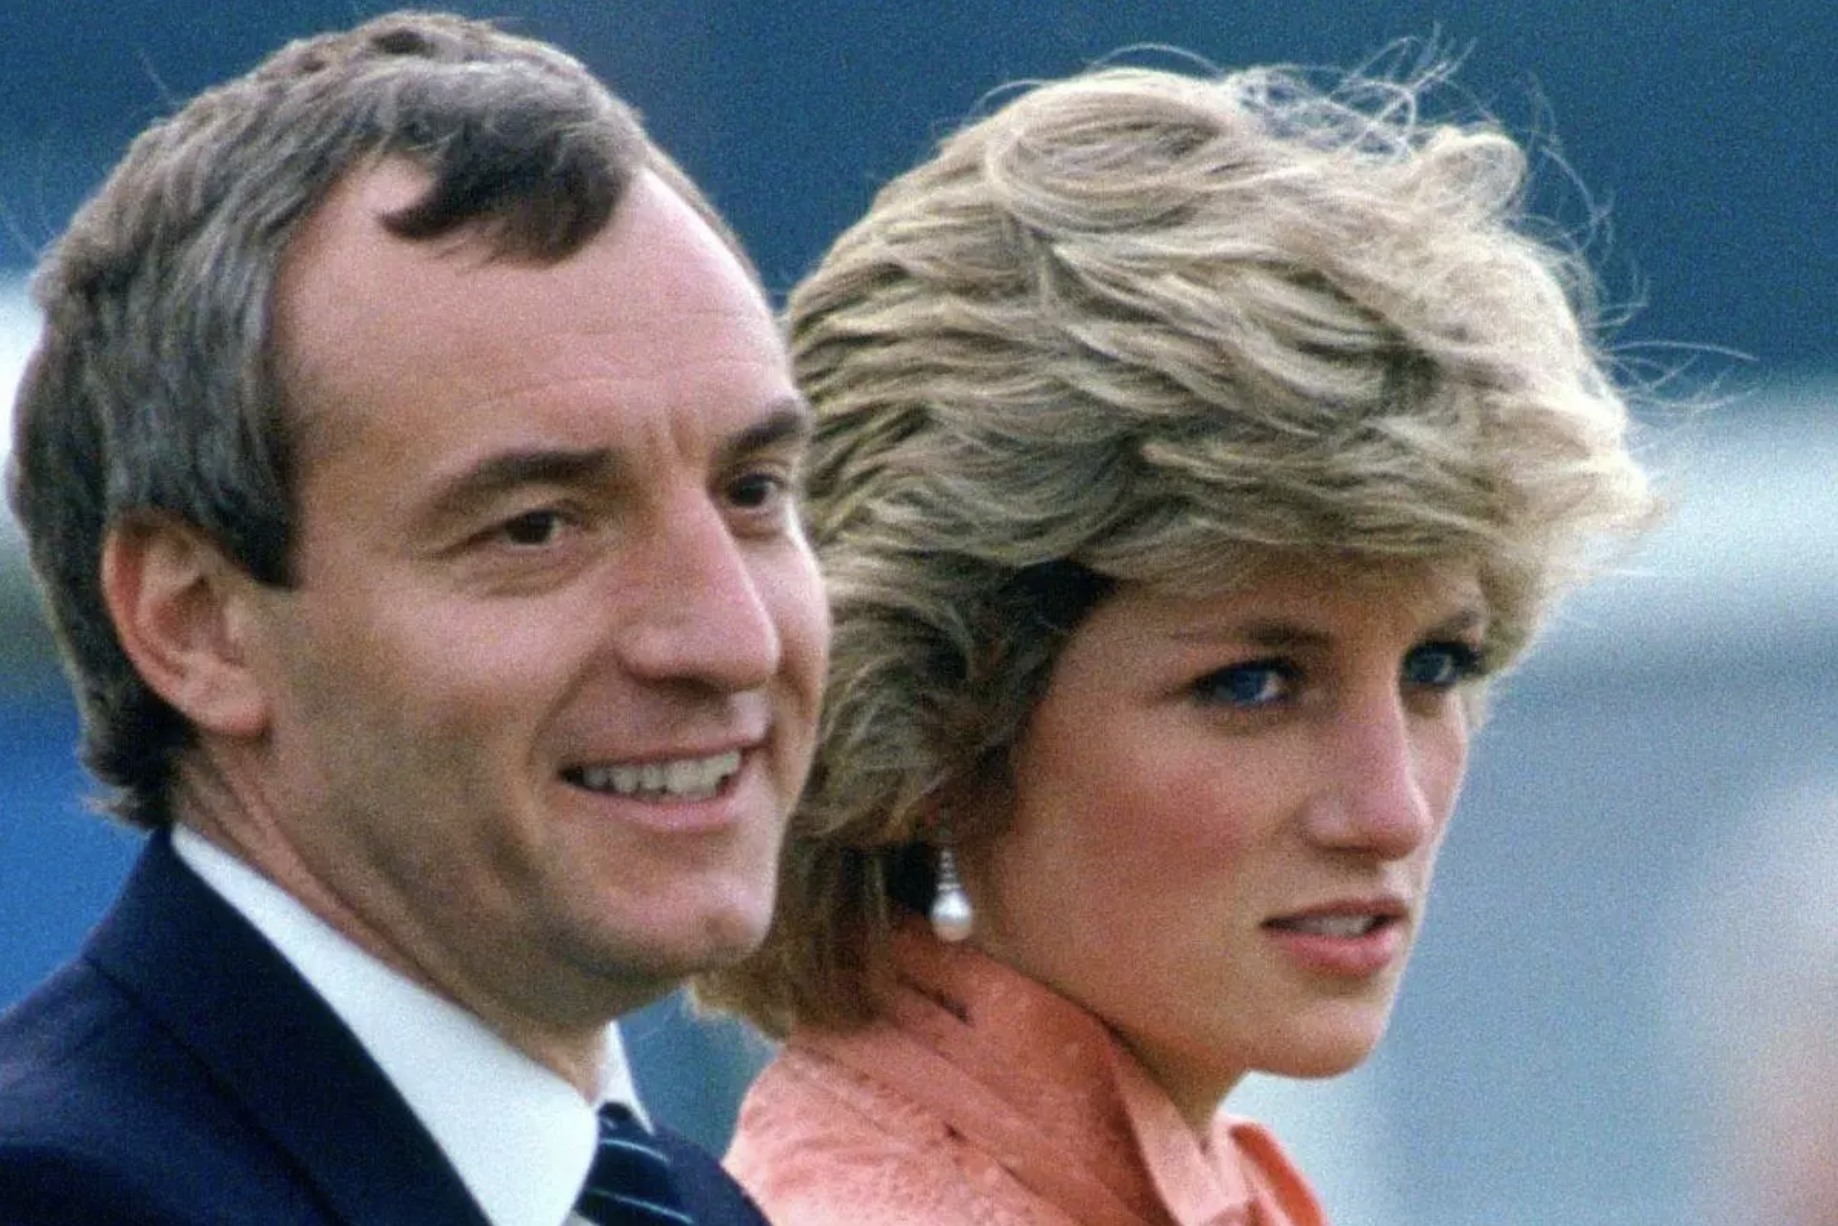 Barry Mannakee and Princess Diana